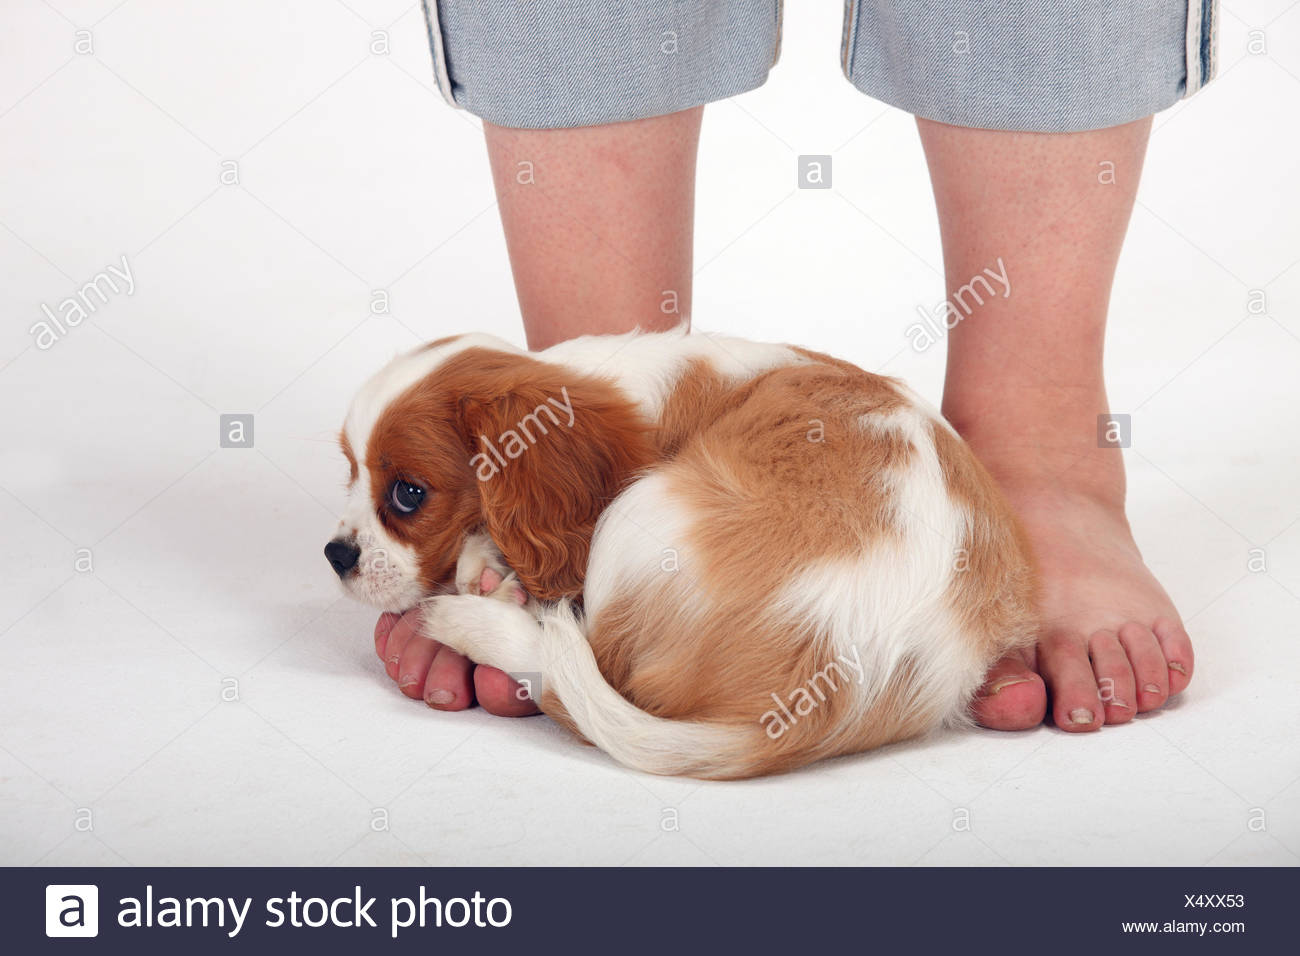 Spaniel And Foot Stock Photos Amp Spaniel And Foot Stock